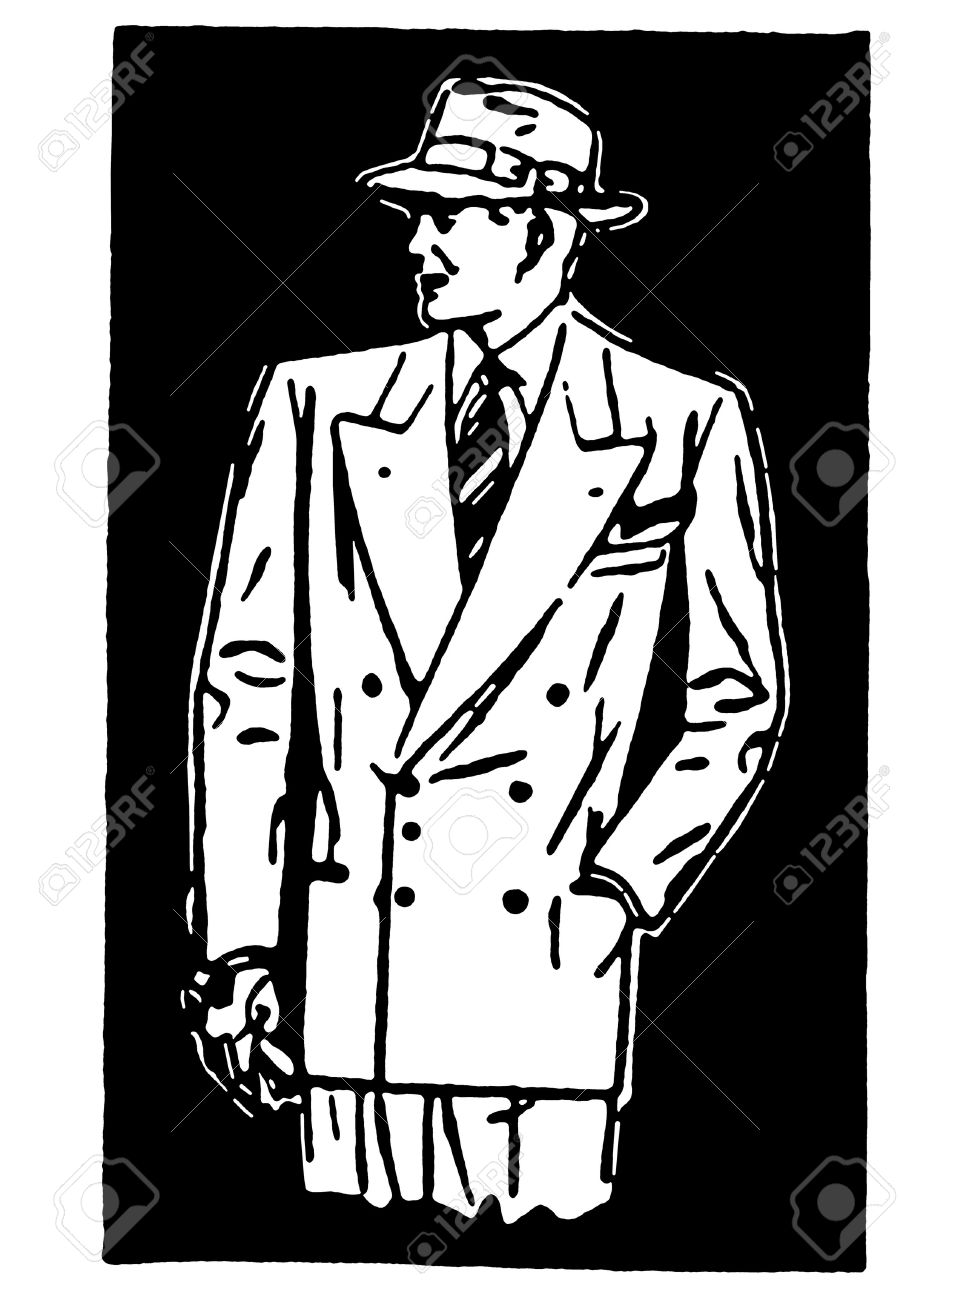 10d97920210 A black and white version of a graphical drawing of a detective character  Stock Photo -